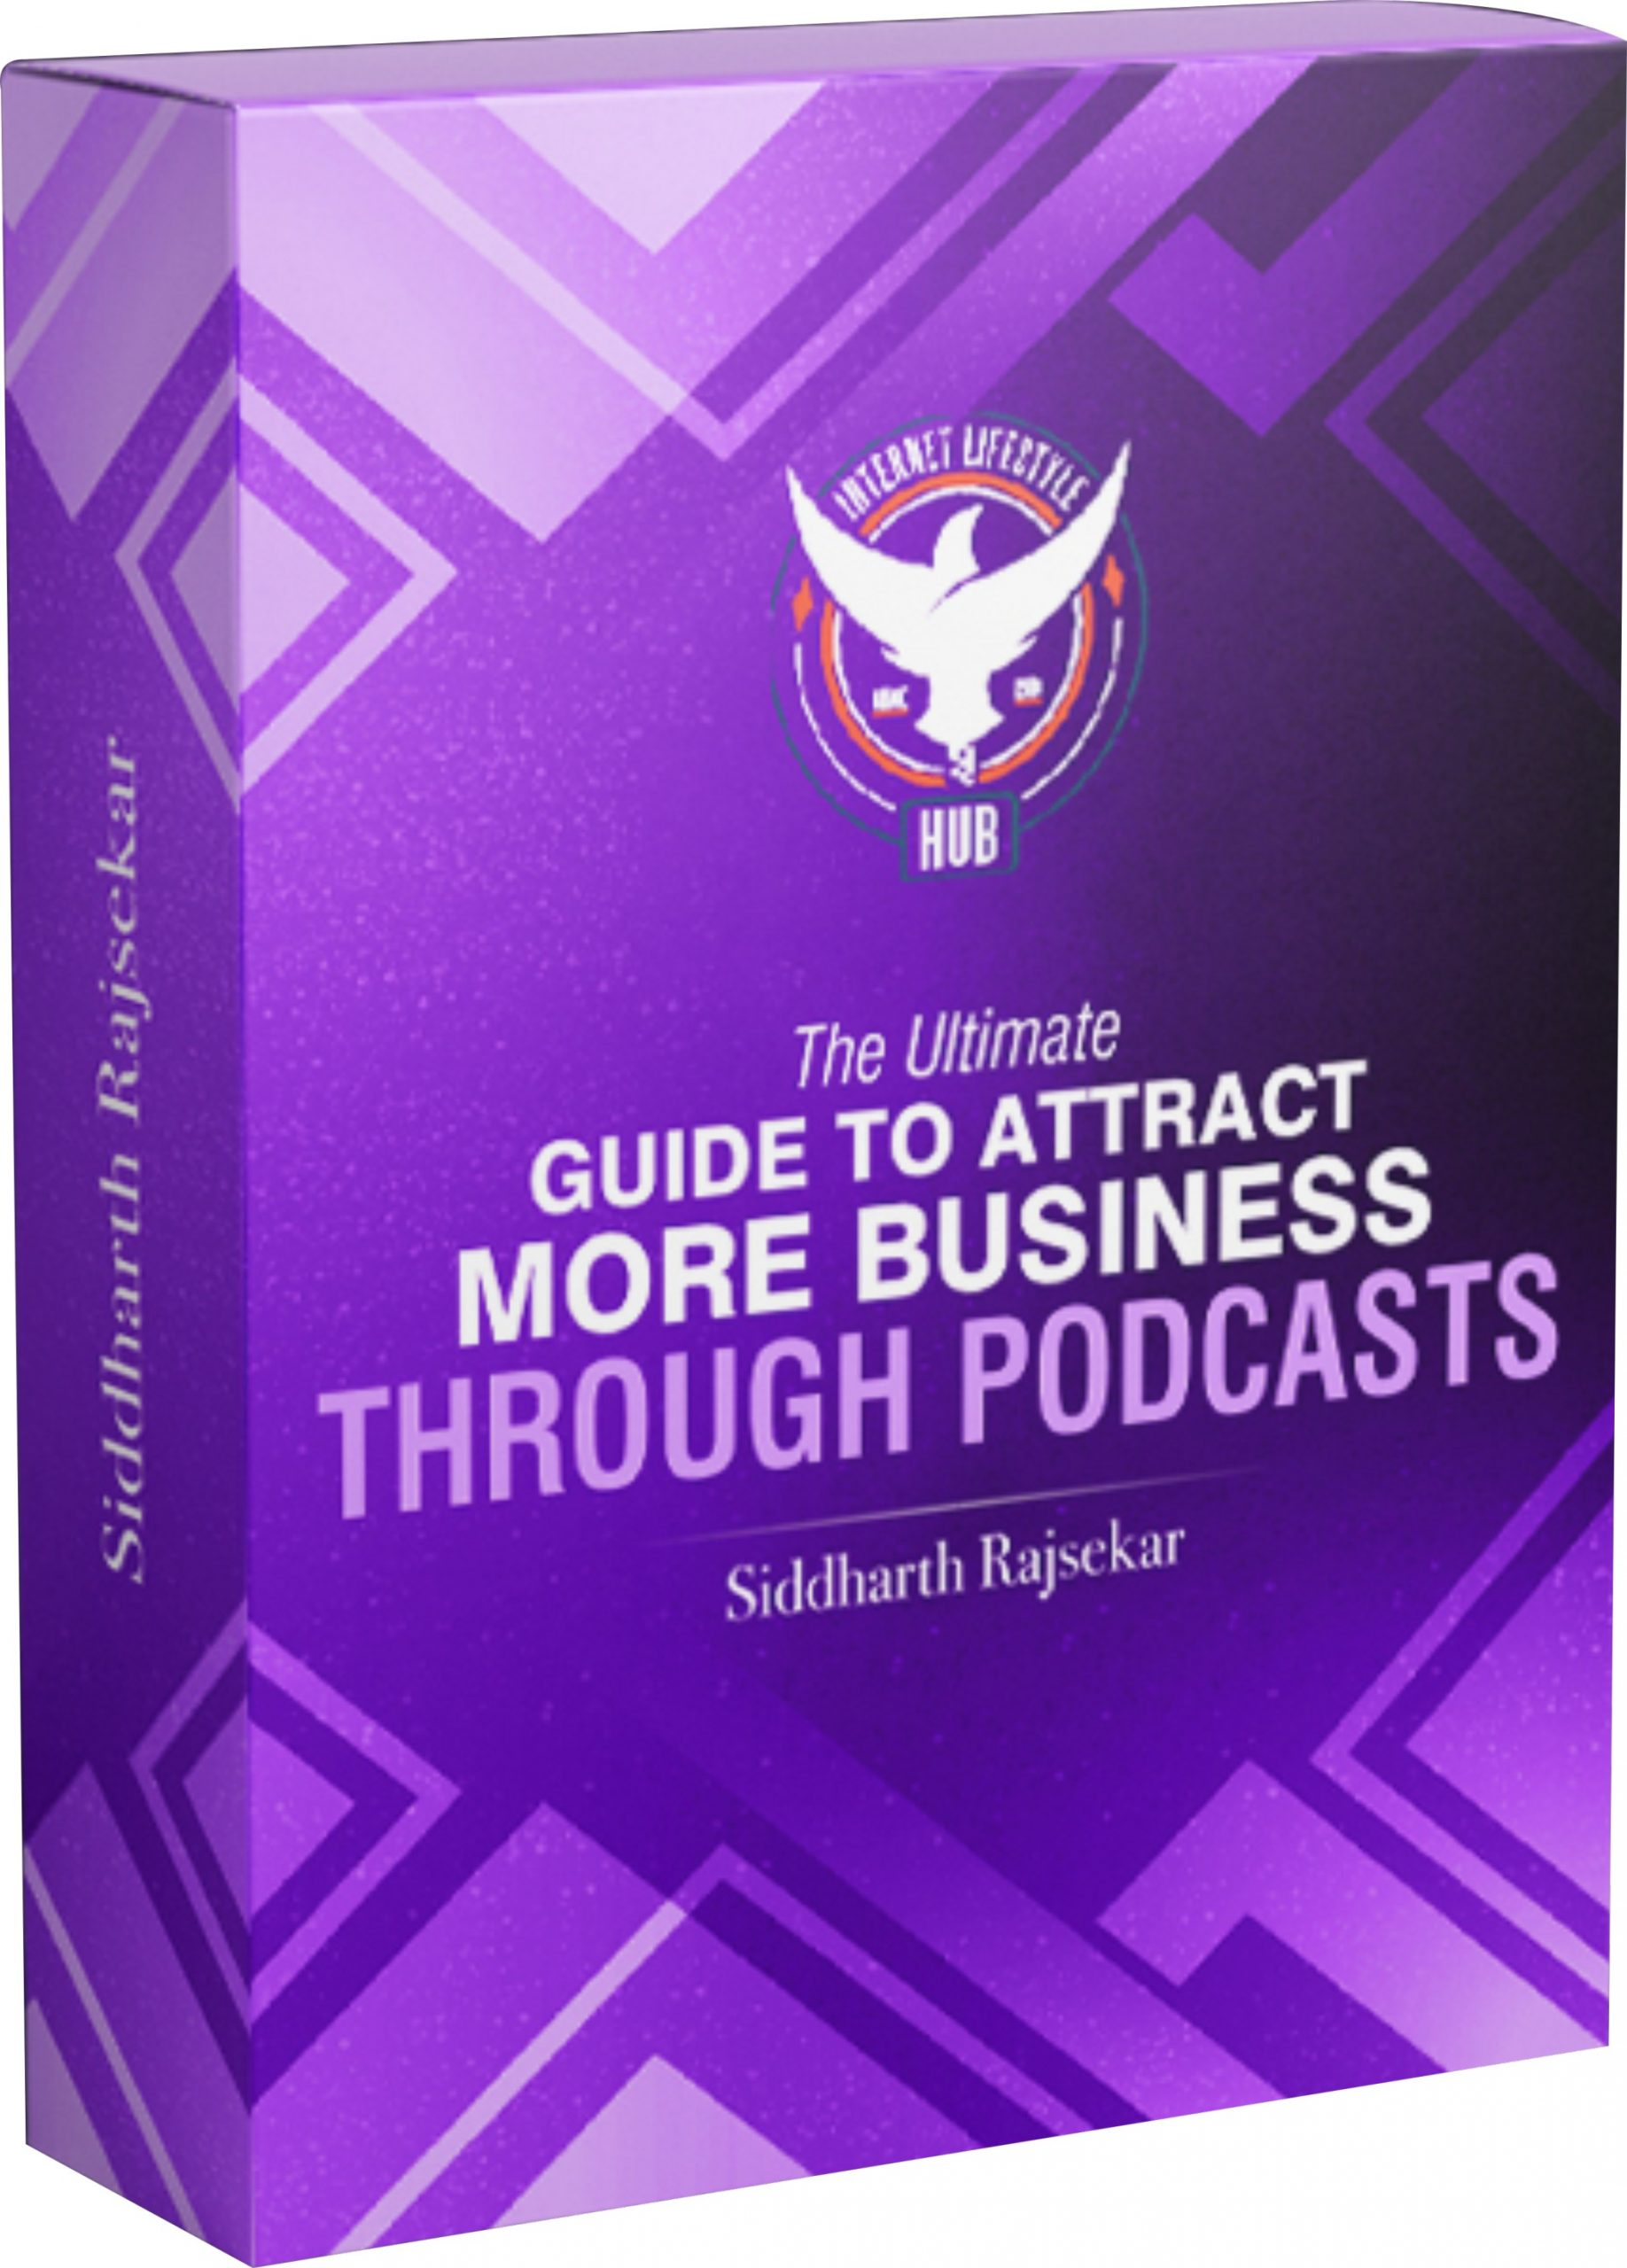 Business Through Podcasts